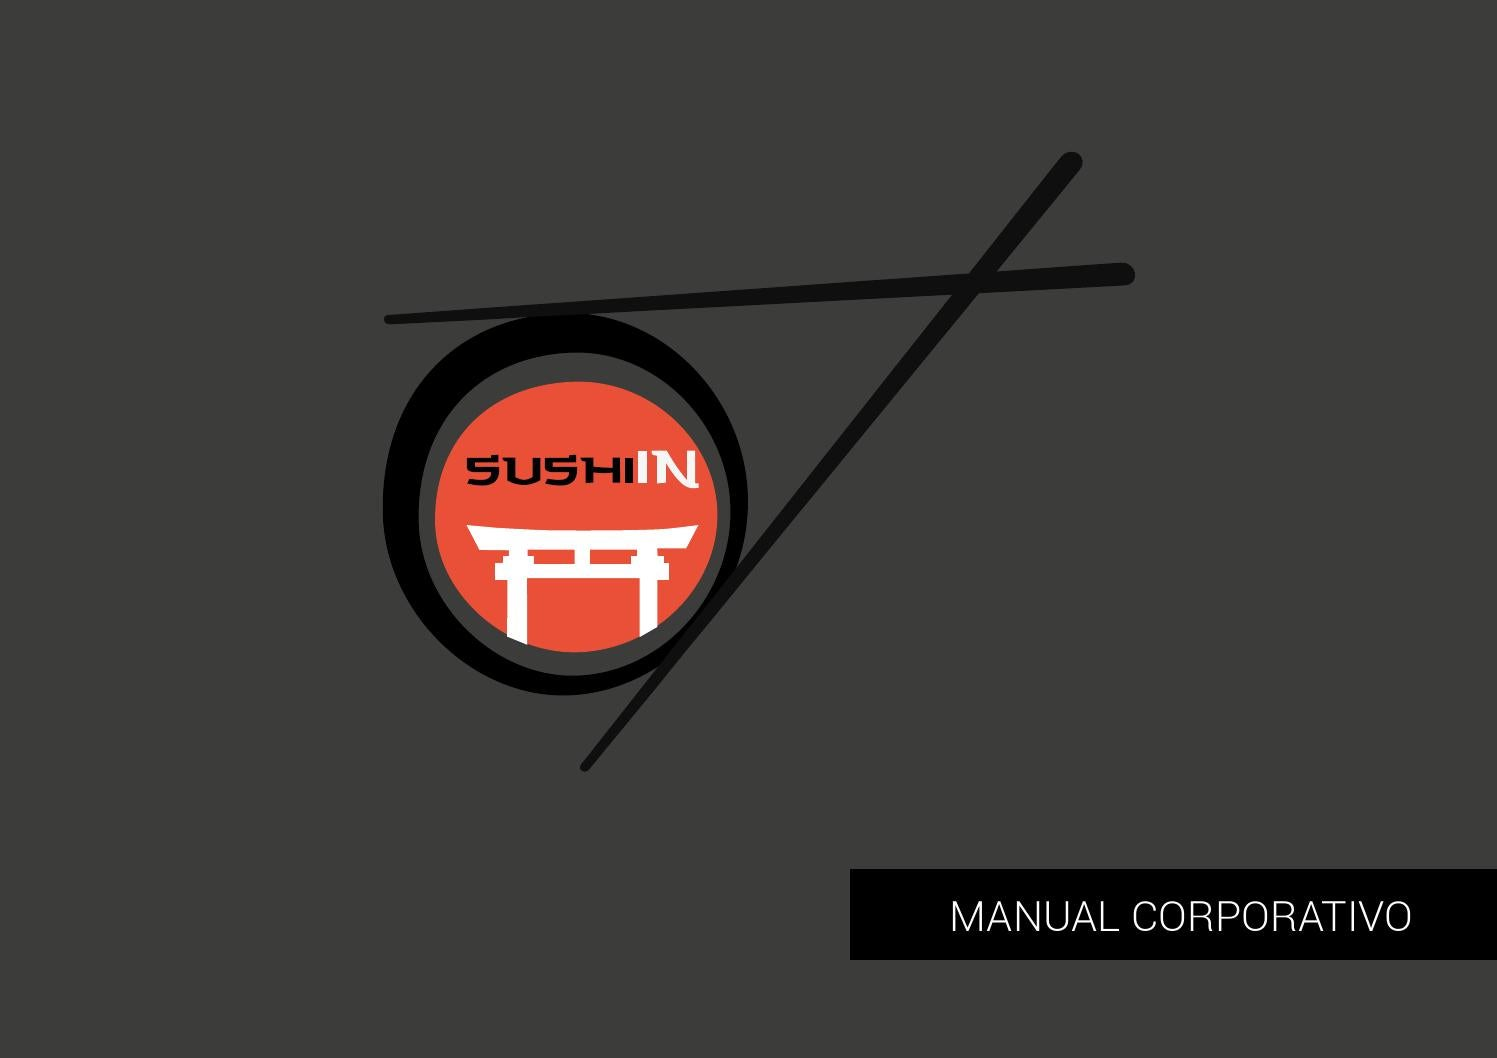 Manual de identidad corporativa Sushi In by Tanya Macarena - issuu